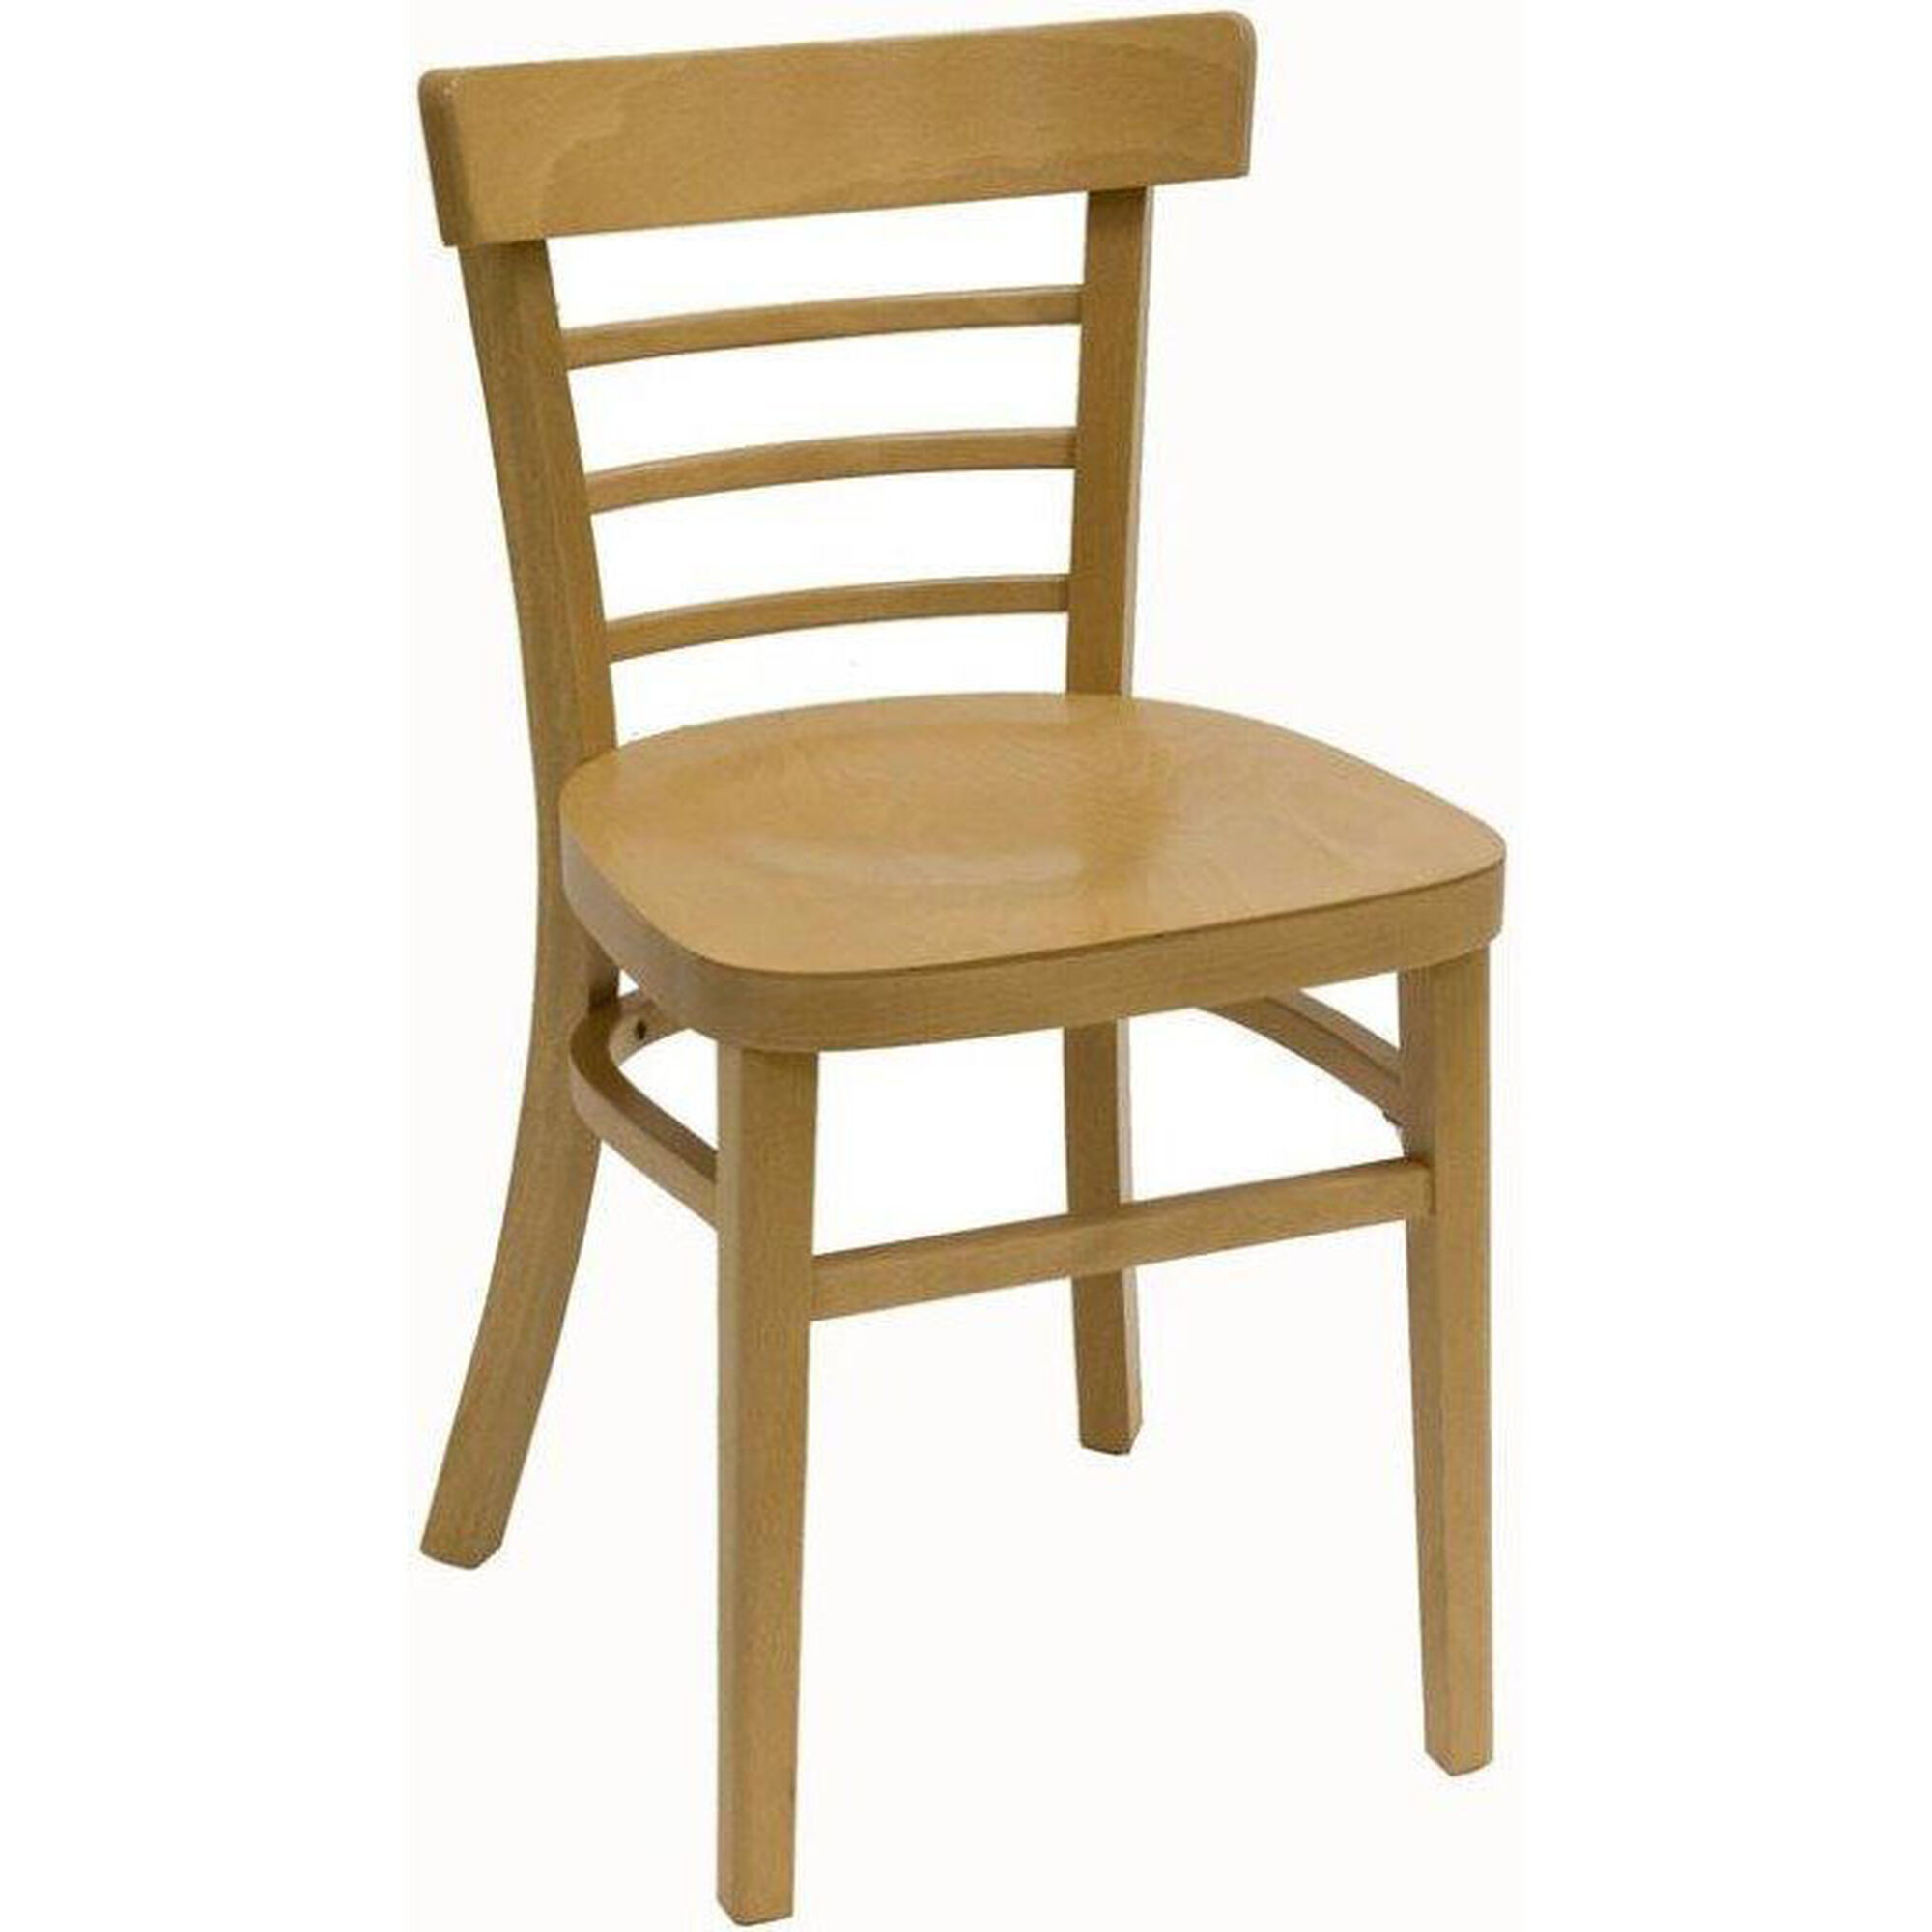 American tables and seating 850 vs n sat for Chair vs chairman